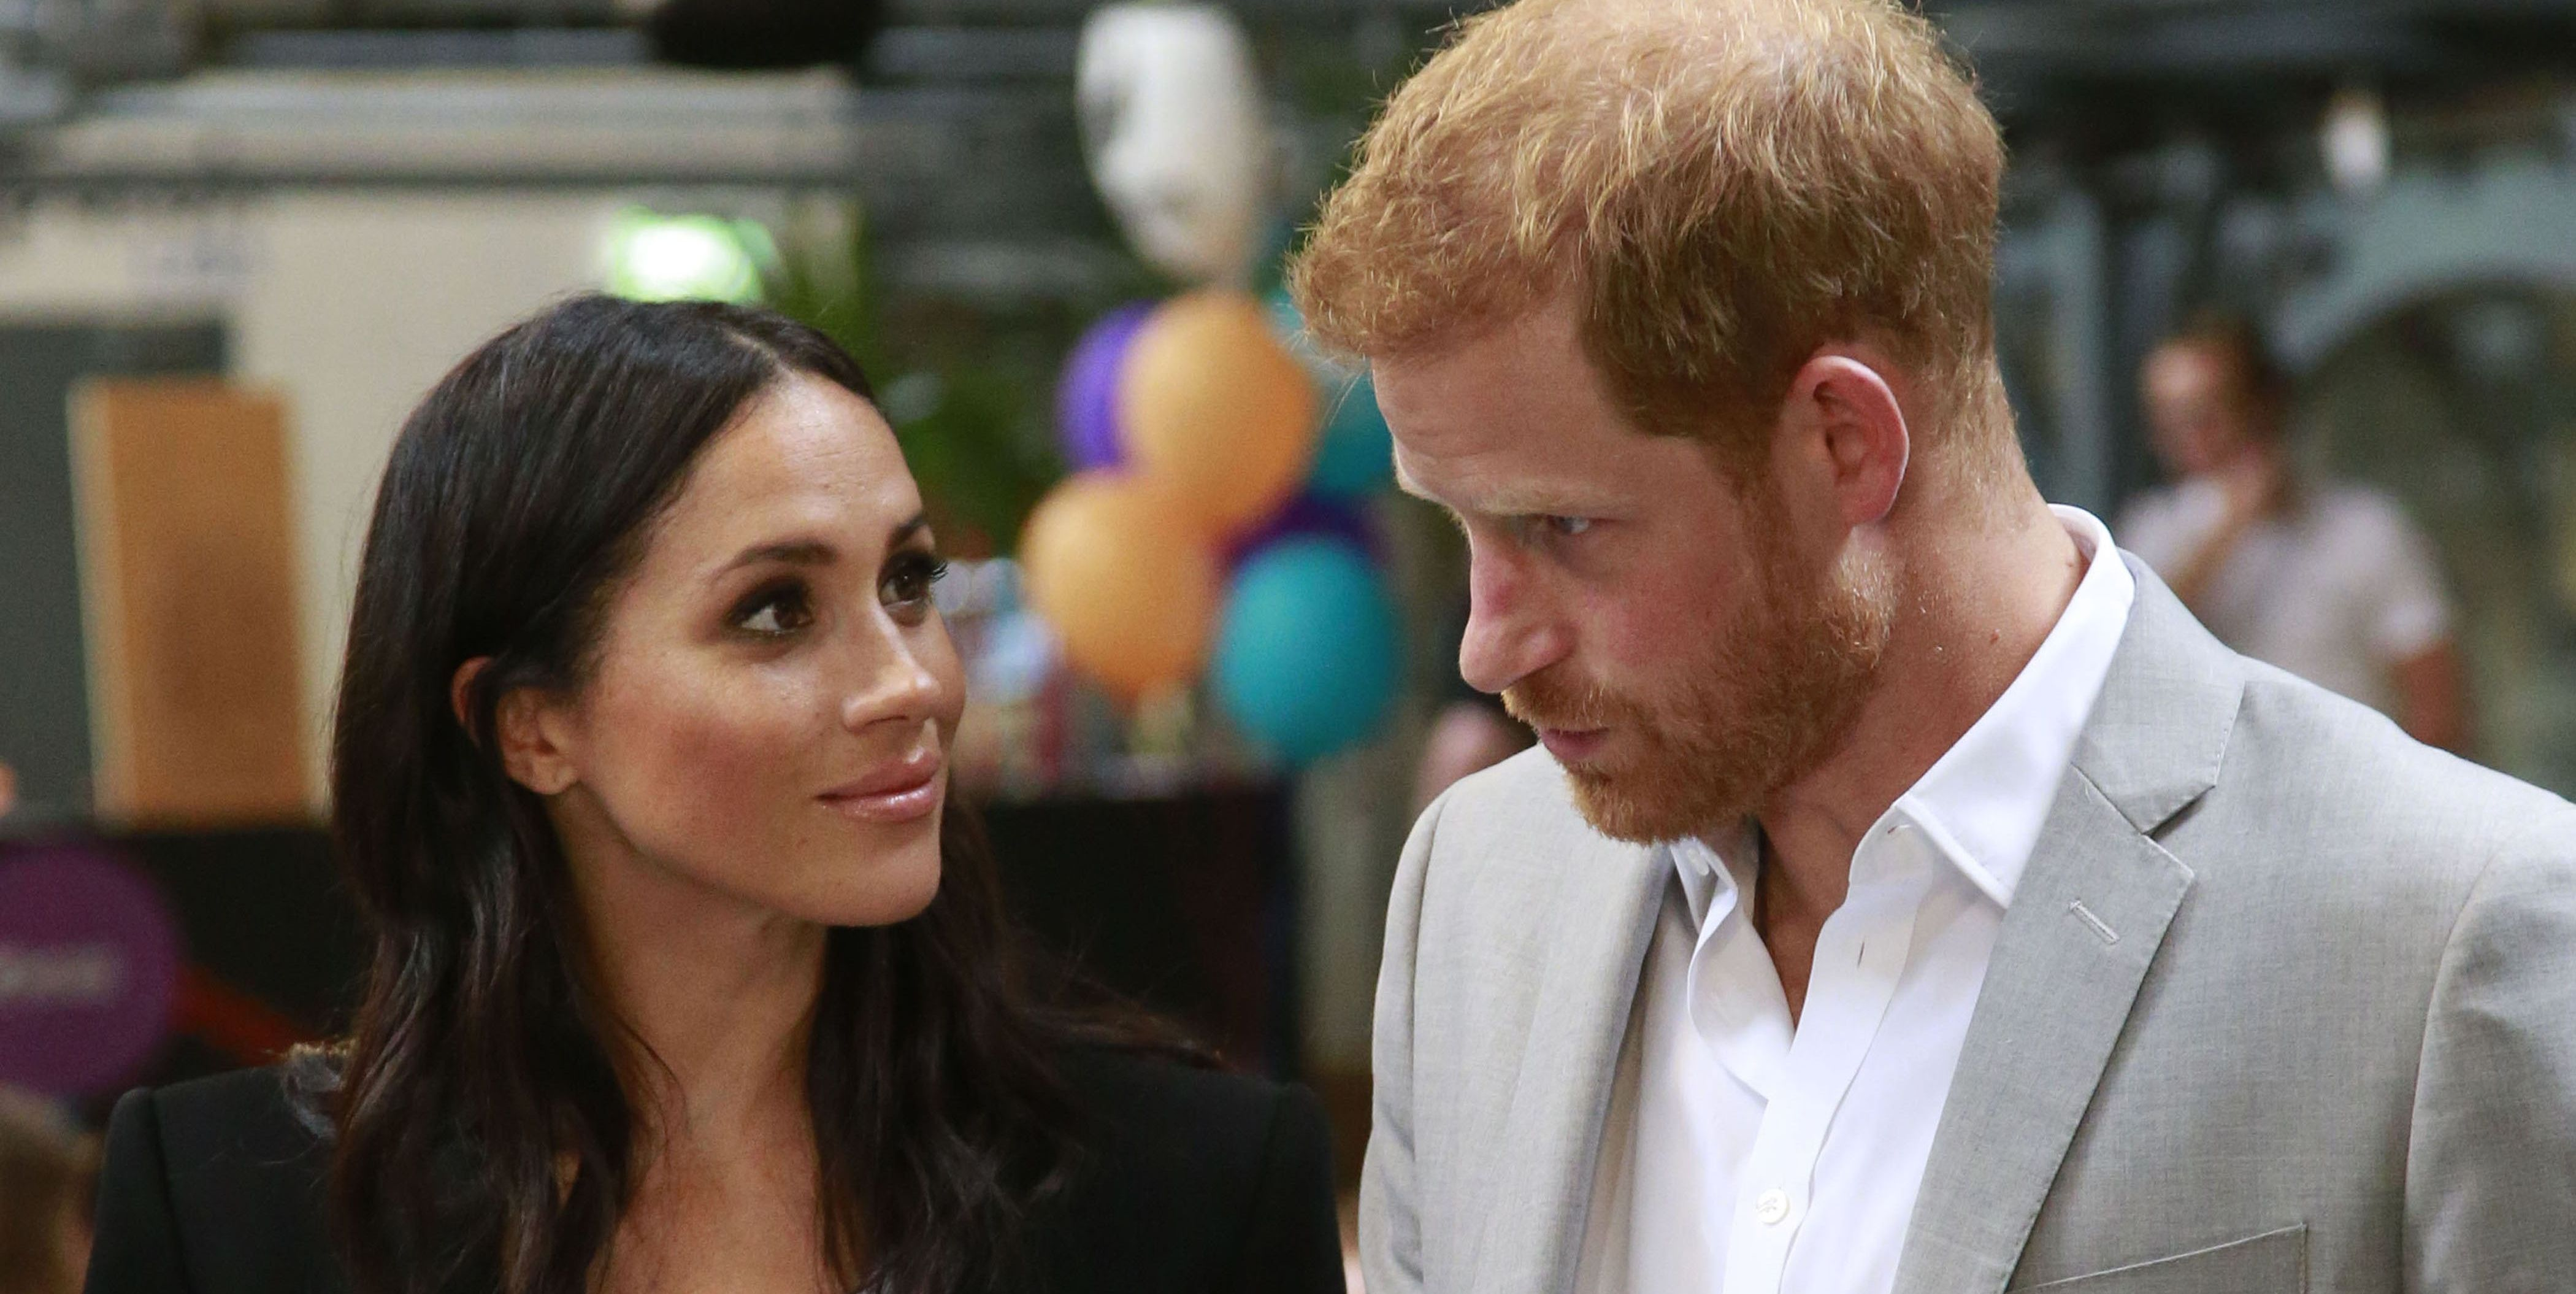 Prince Harry Just Said the Funniest Thing About Having Kids